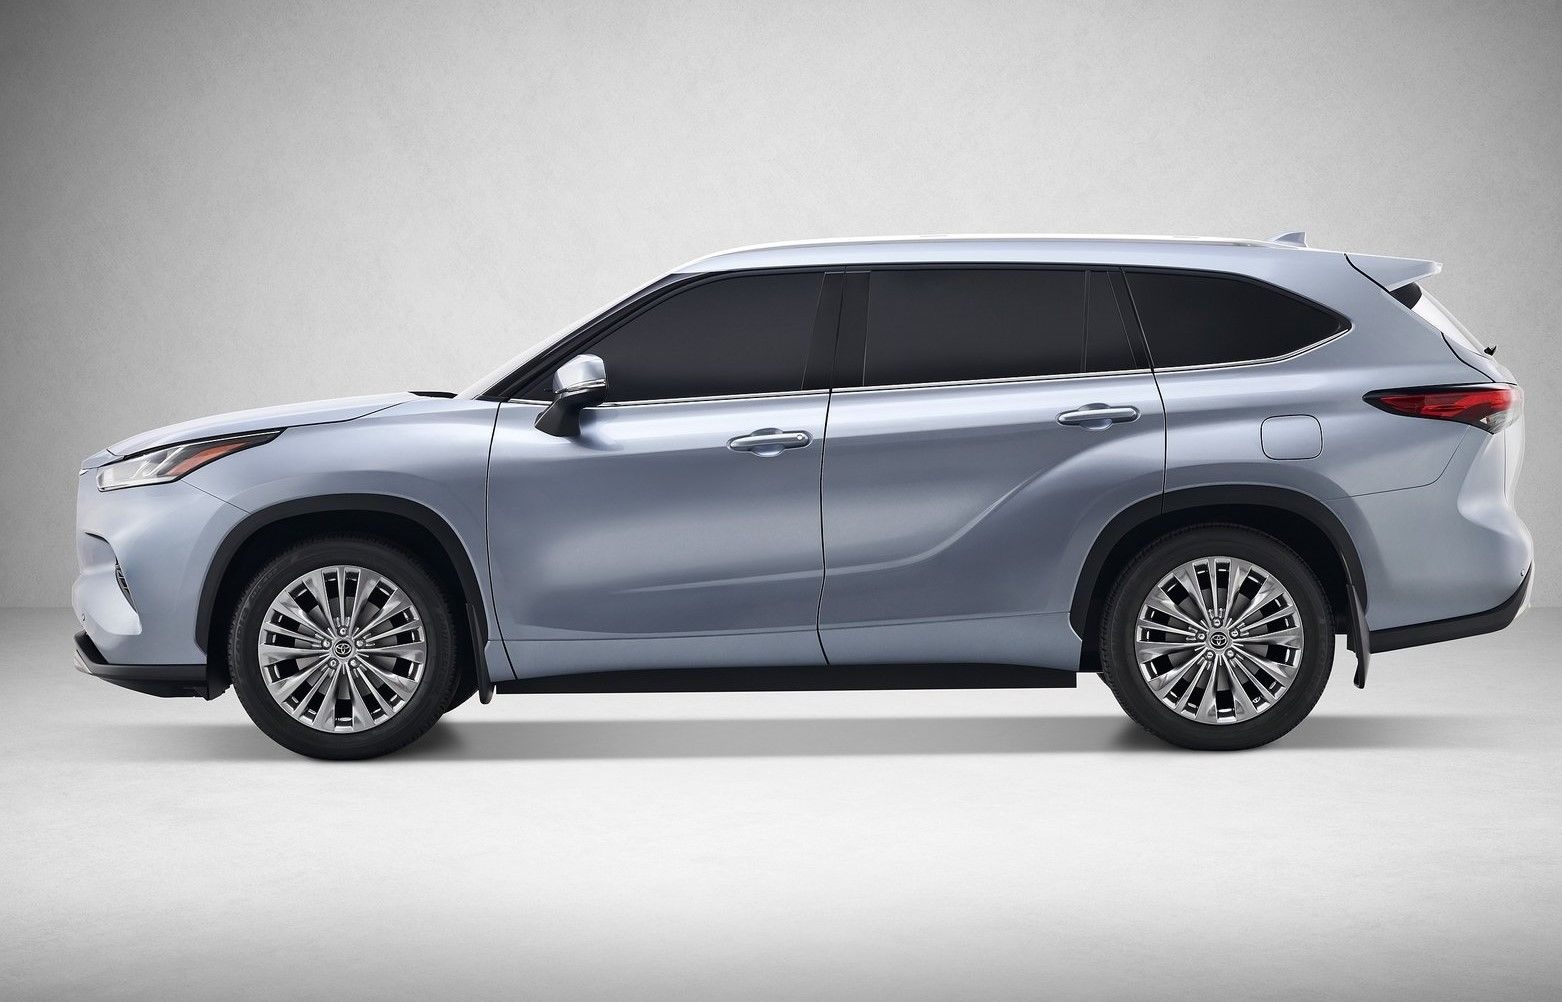 Bolton Toyota The 2020 Toyota Highlander Redesigned With